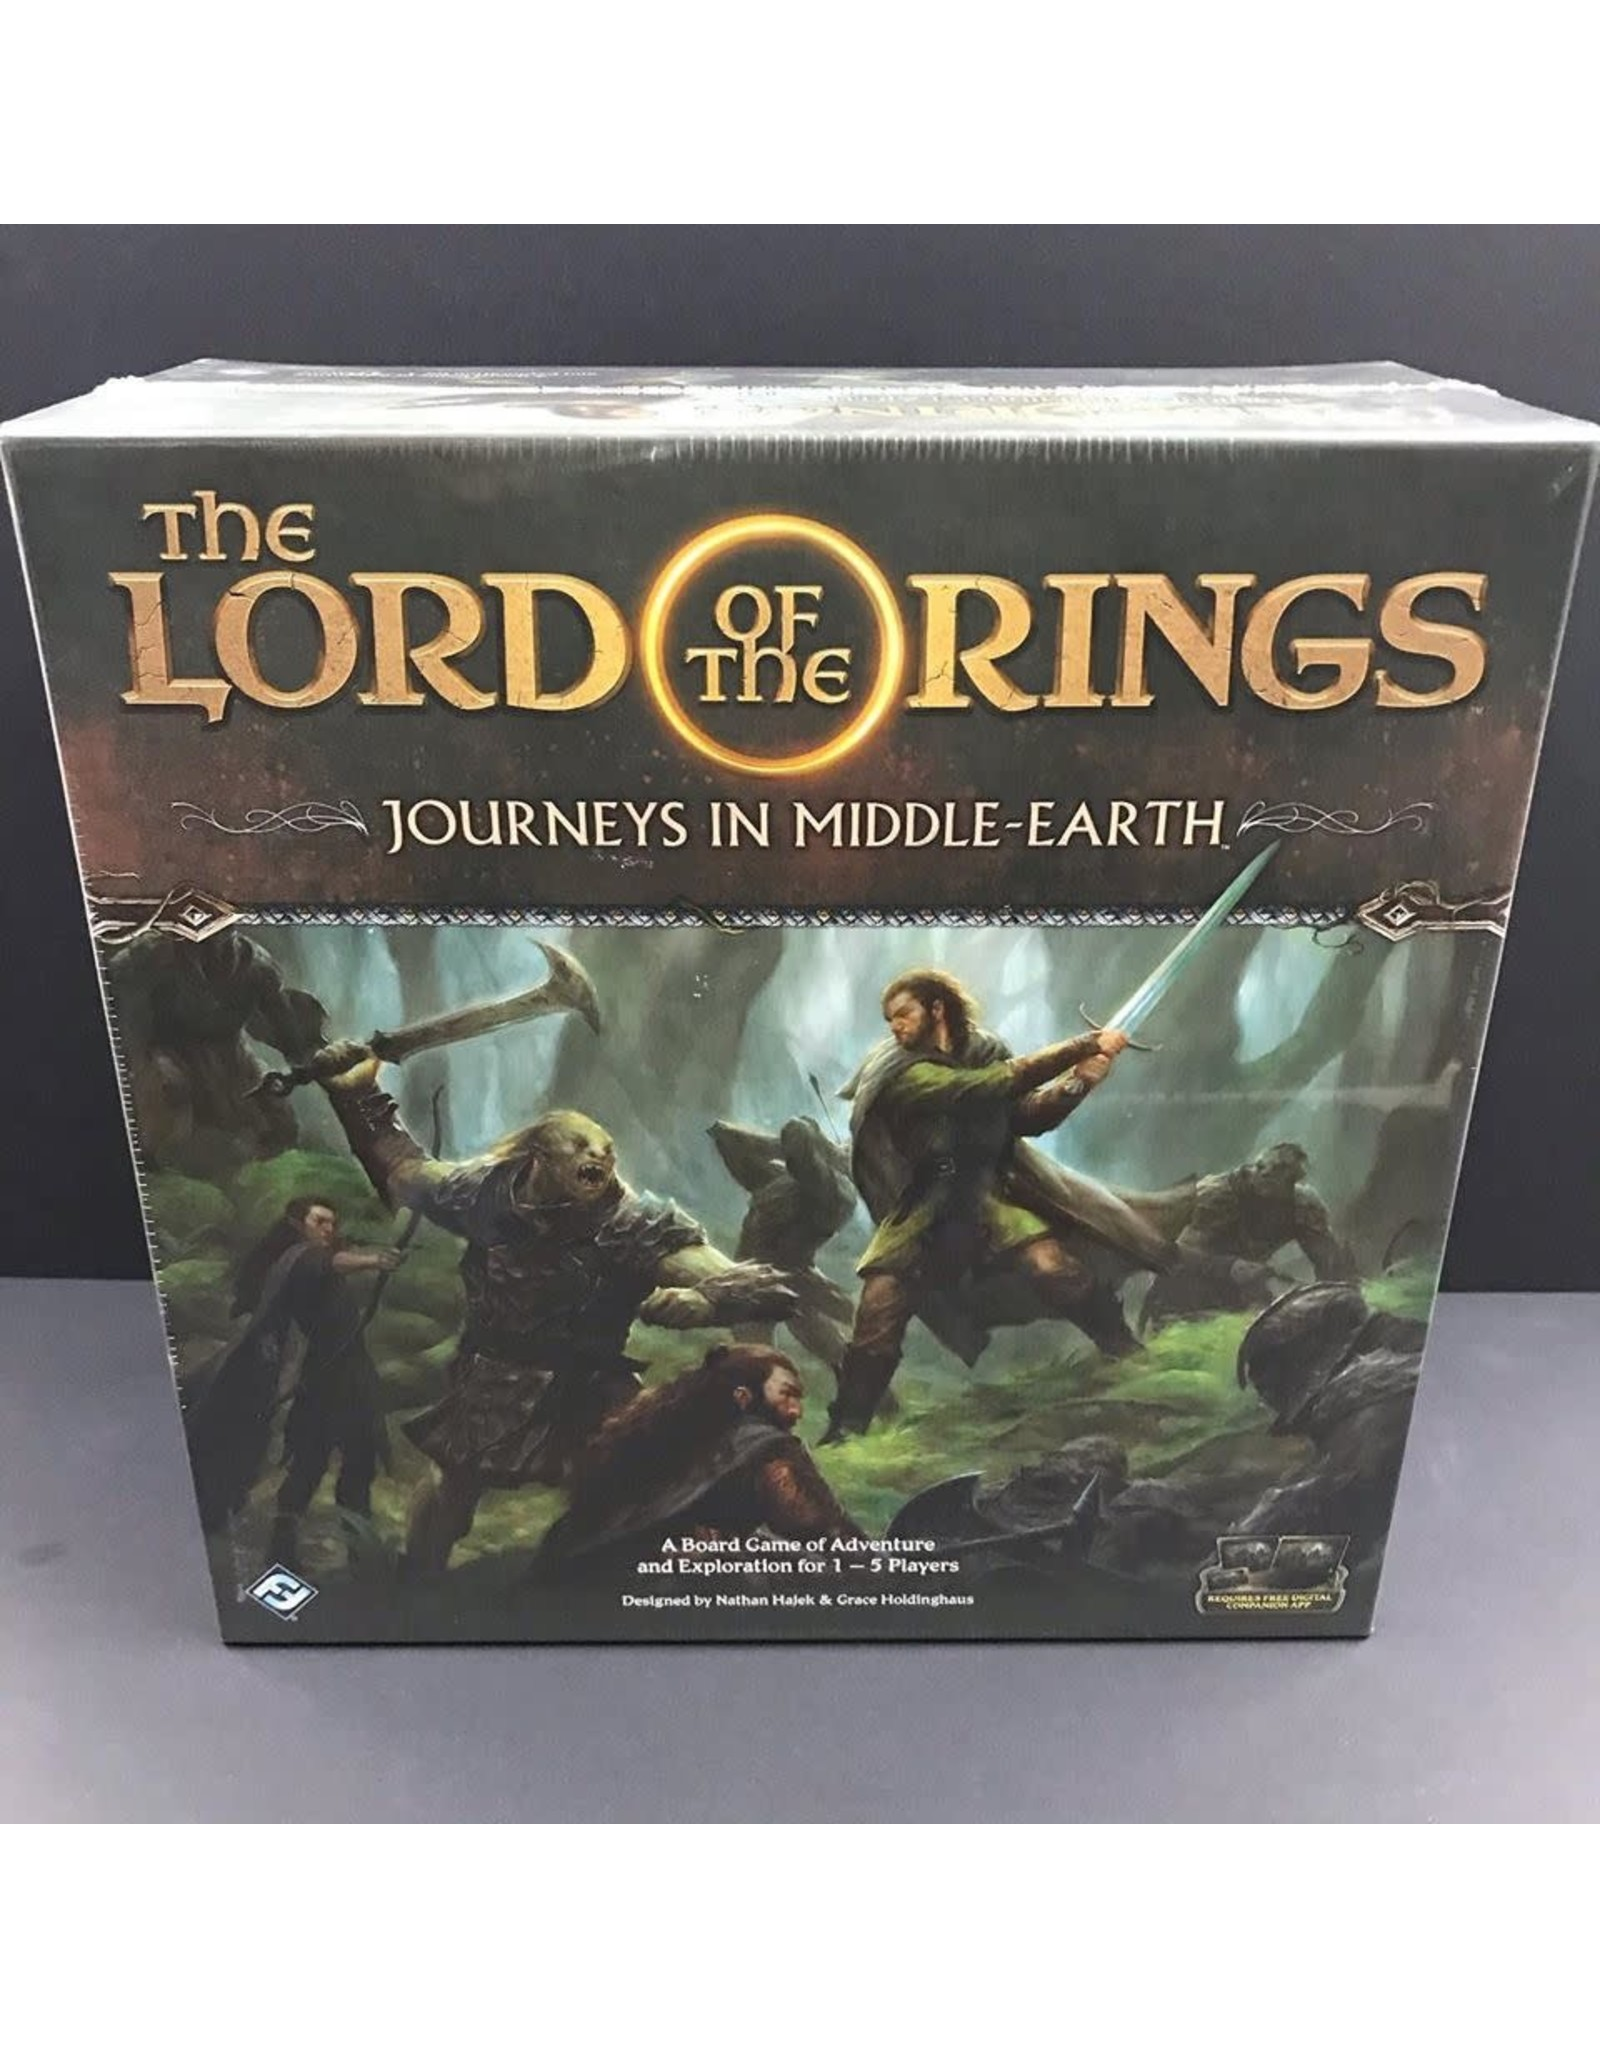 Lord of the Rings Journeys in Middle-Earth